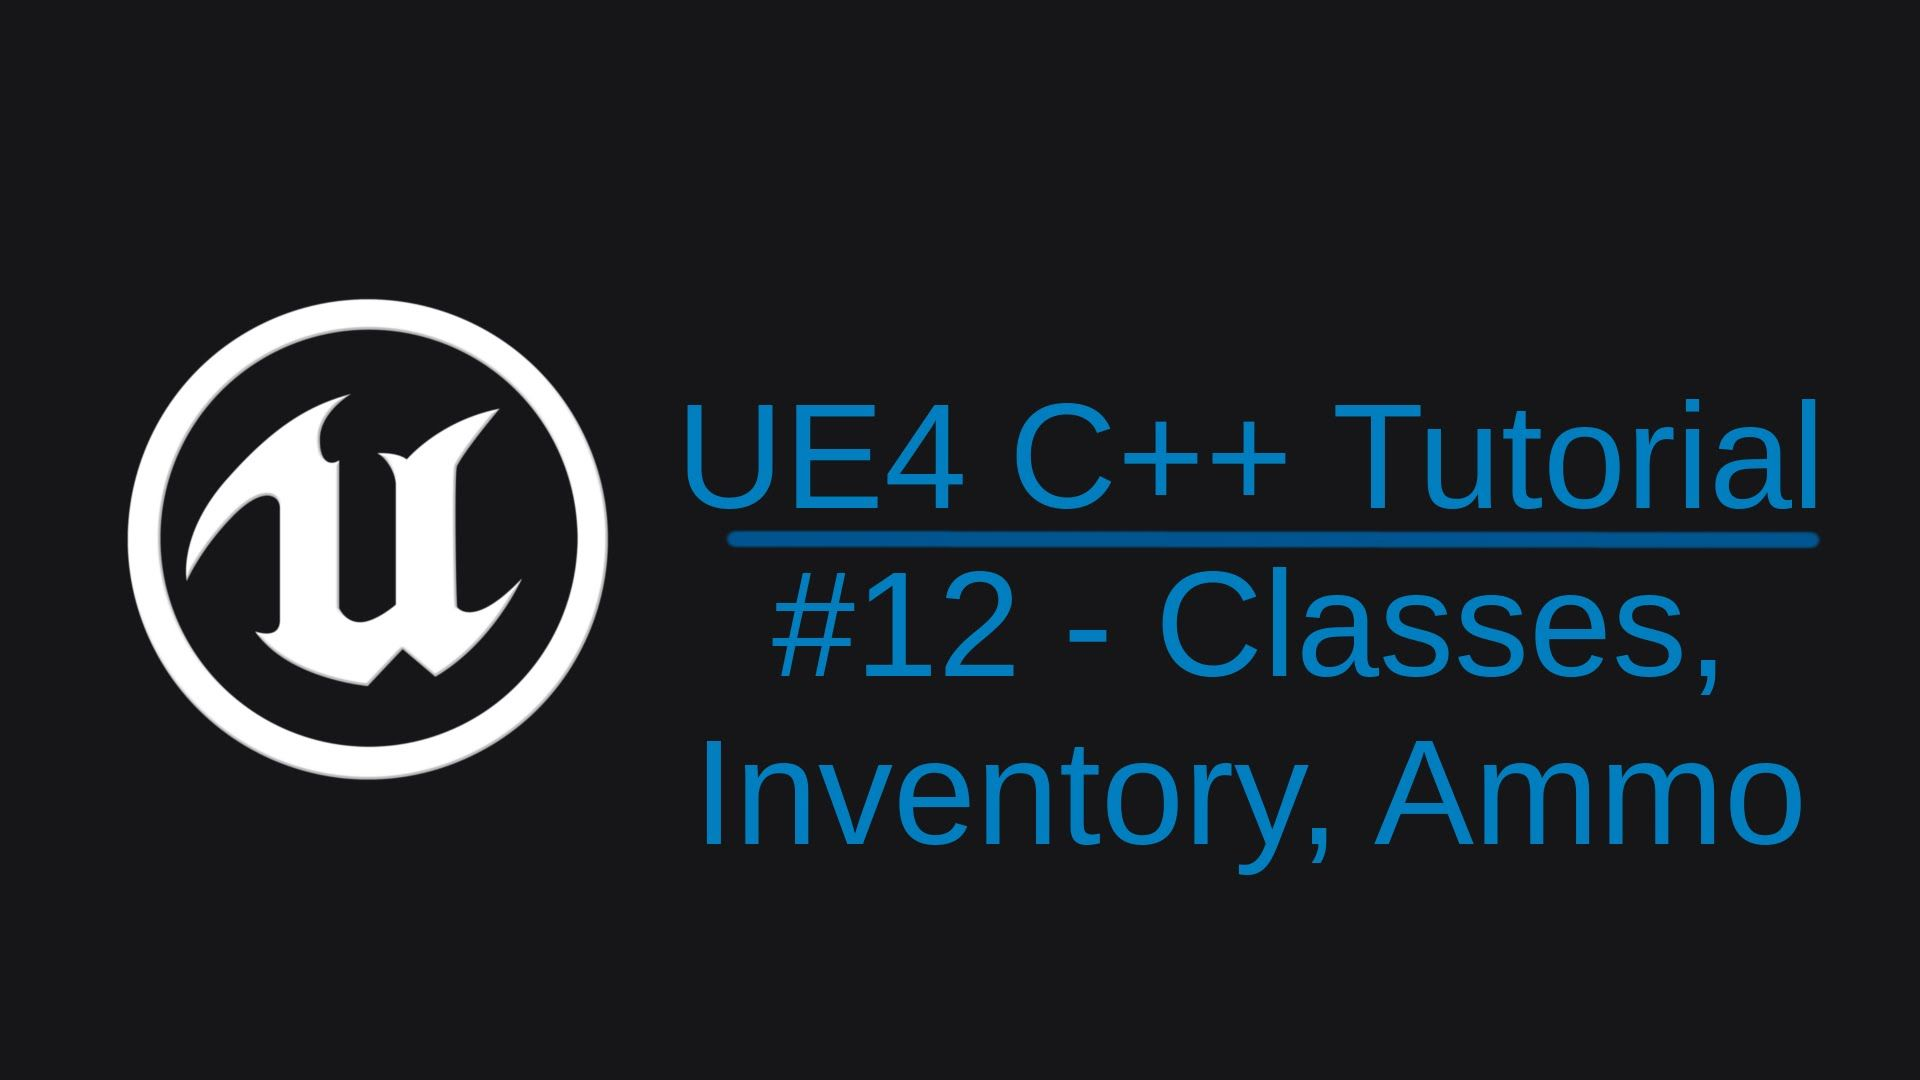 C++] Unreal Engine 4 Game Tutorial #12 - Weapons, Inventory